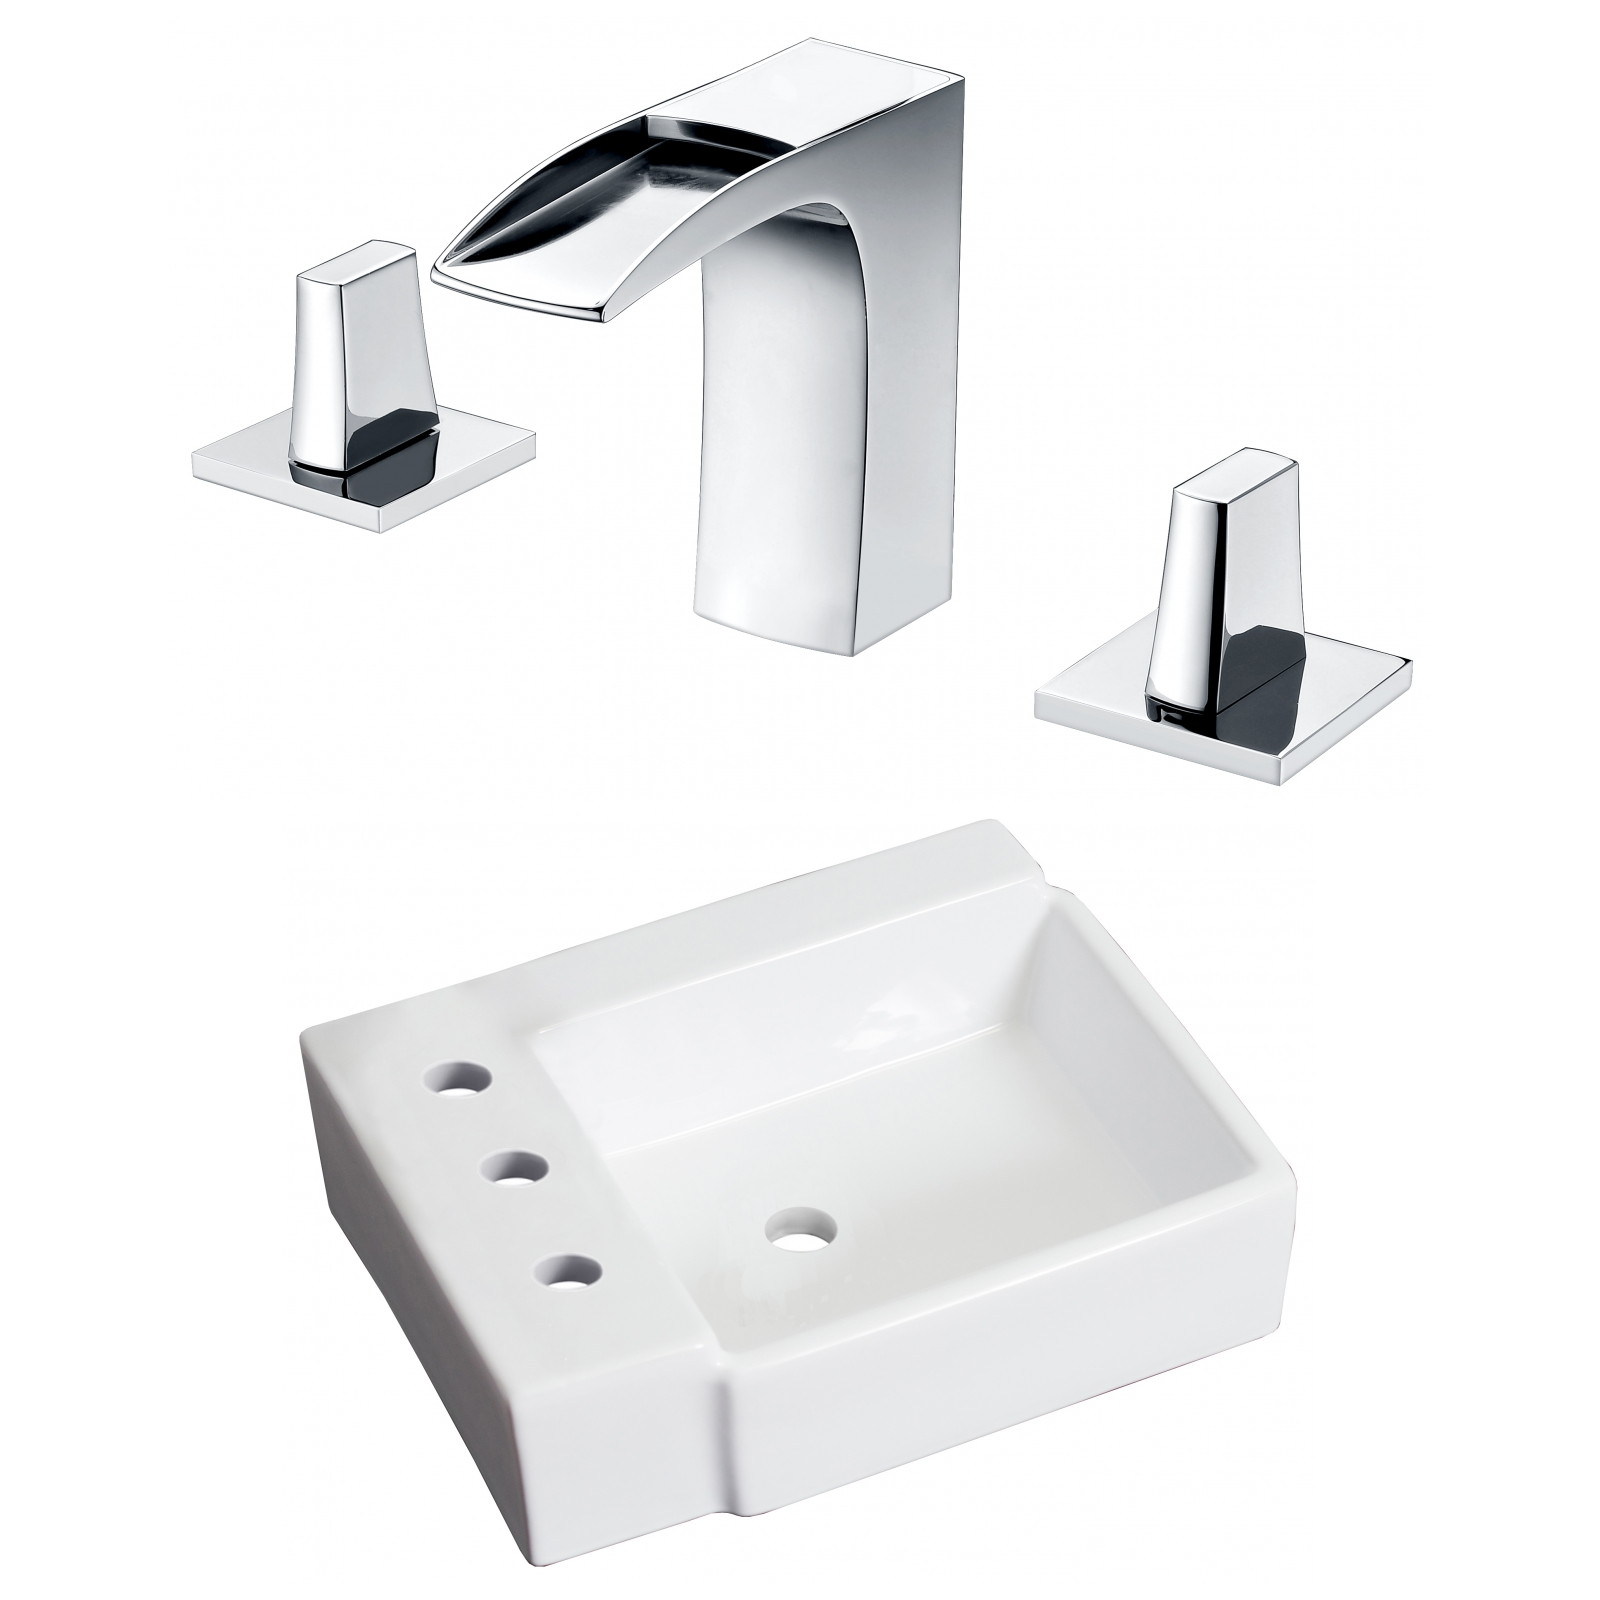 Vanities - Faucets - Bathroom Accessories - Vessels - Sinks - Wood ...